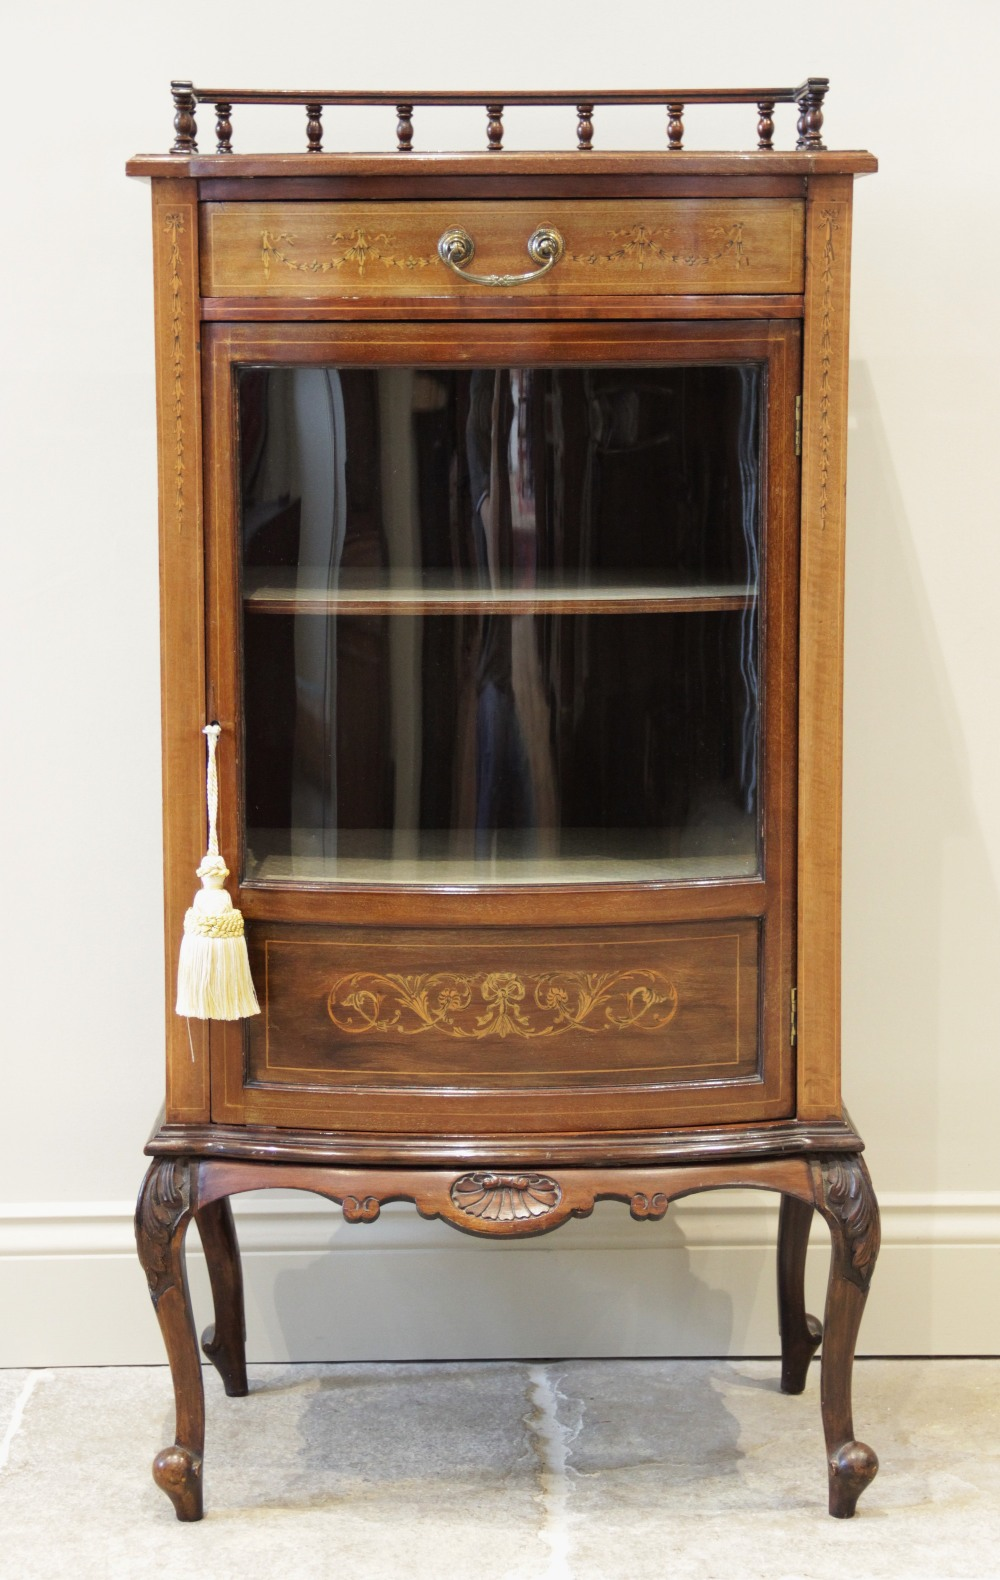 An Edwardian mahogany bowfront display cabinet, the shaped top with a rear spindle gallery, above